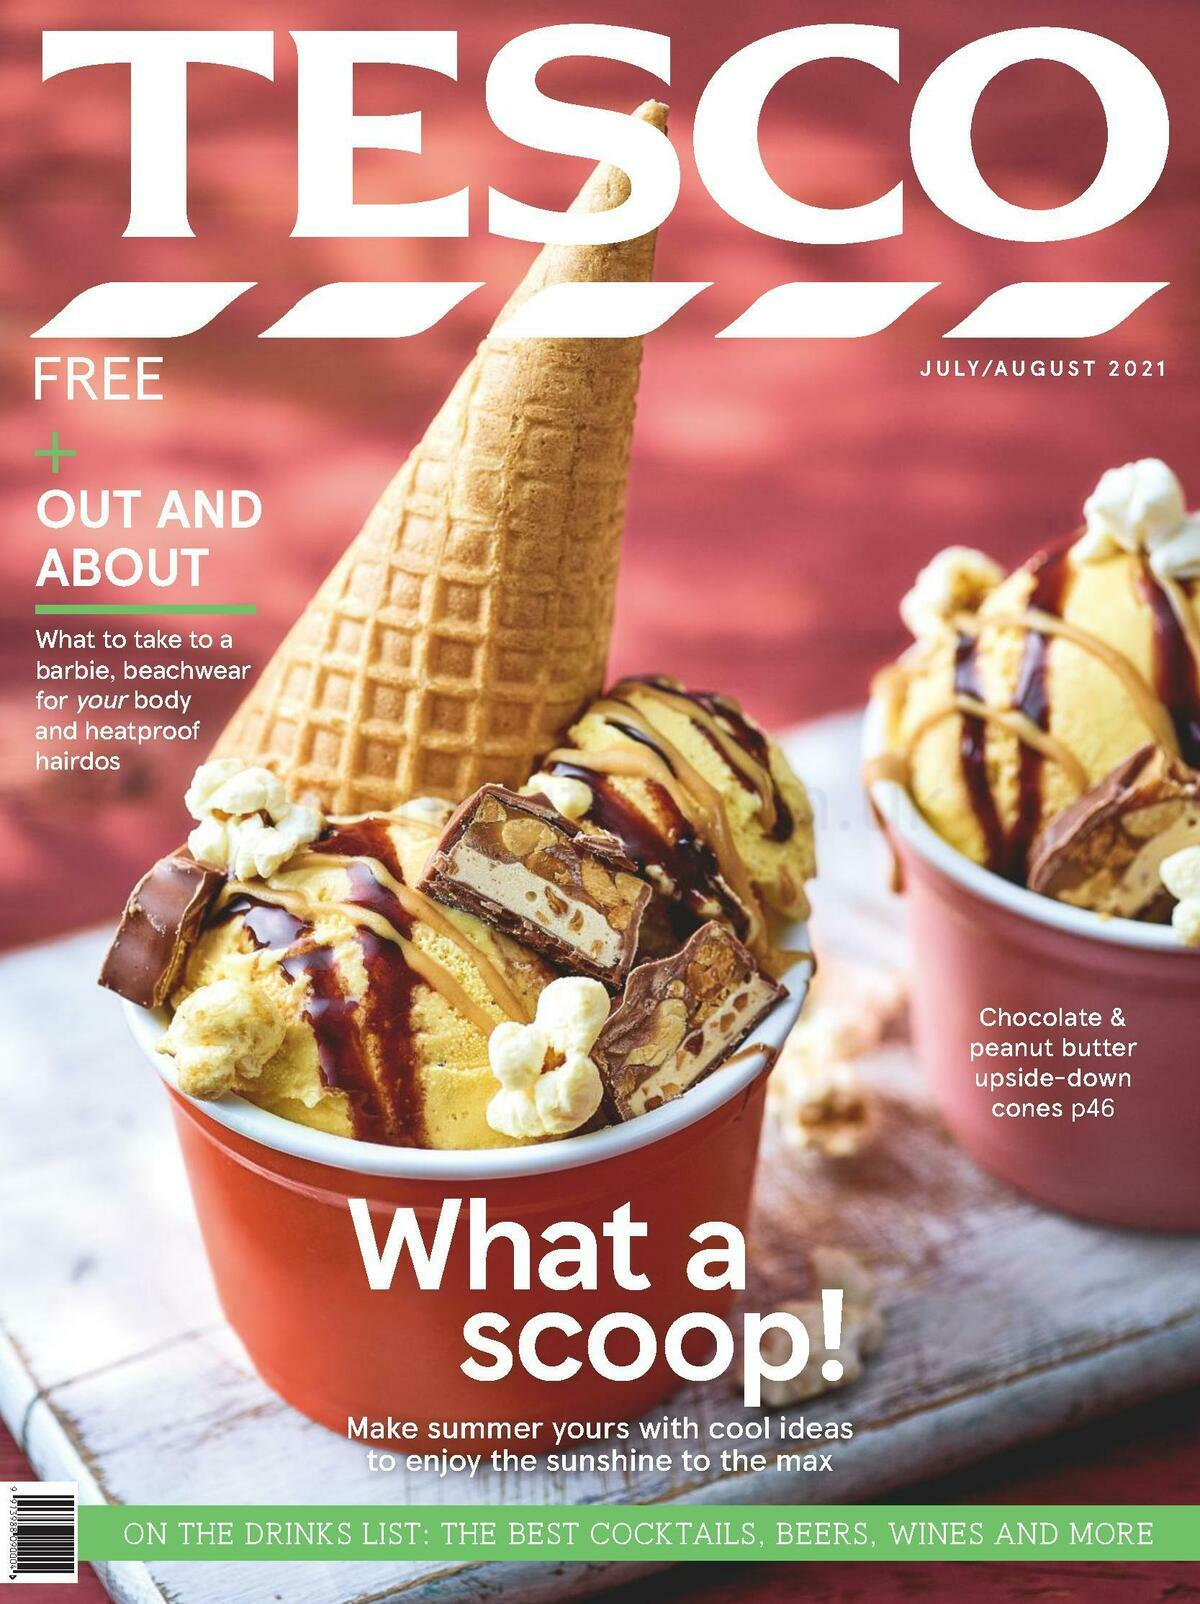 TESCO Magazine July/August Offers from July 1